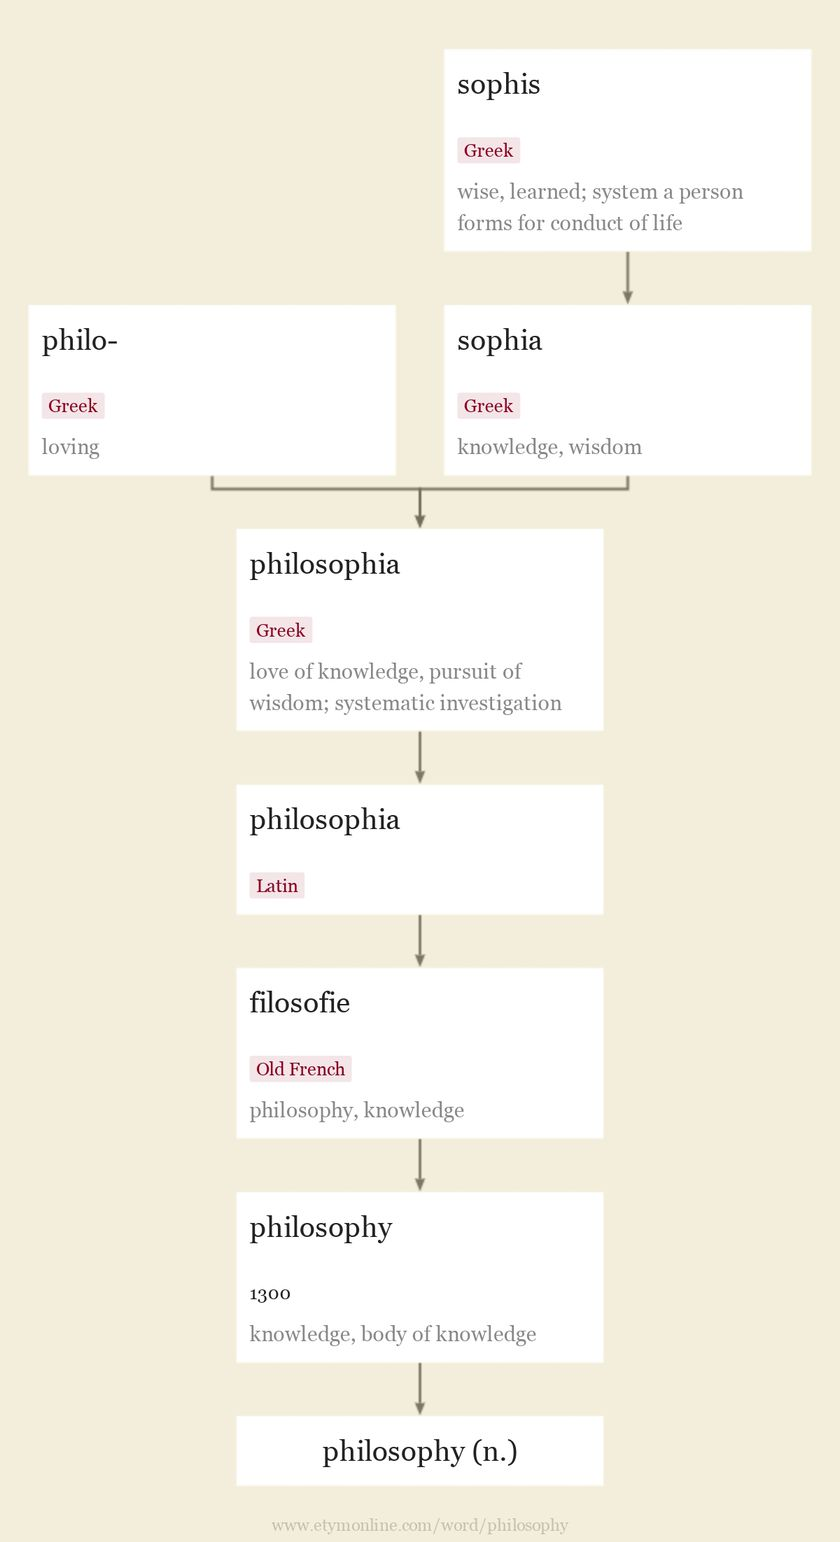 Origin and meaning of philosophy